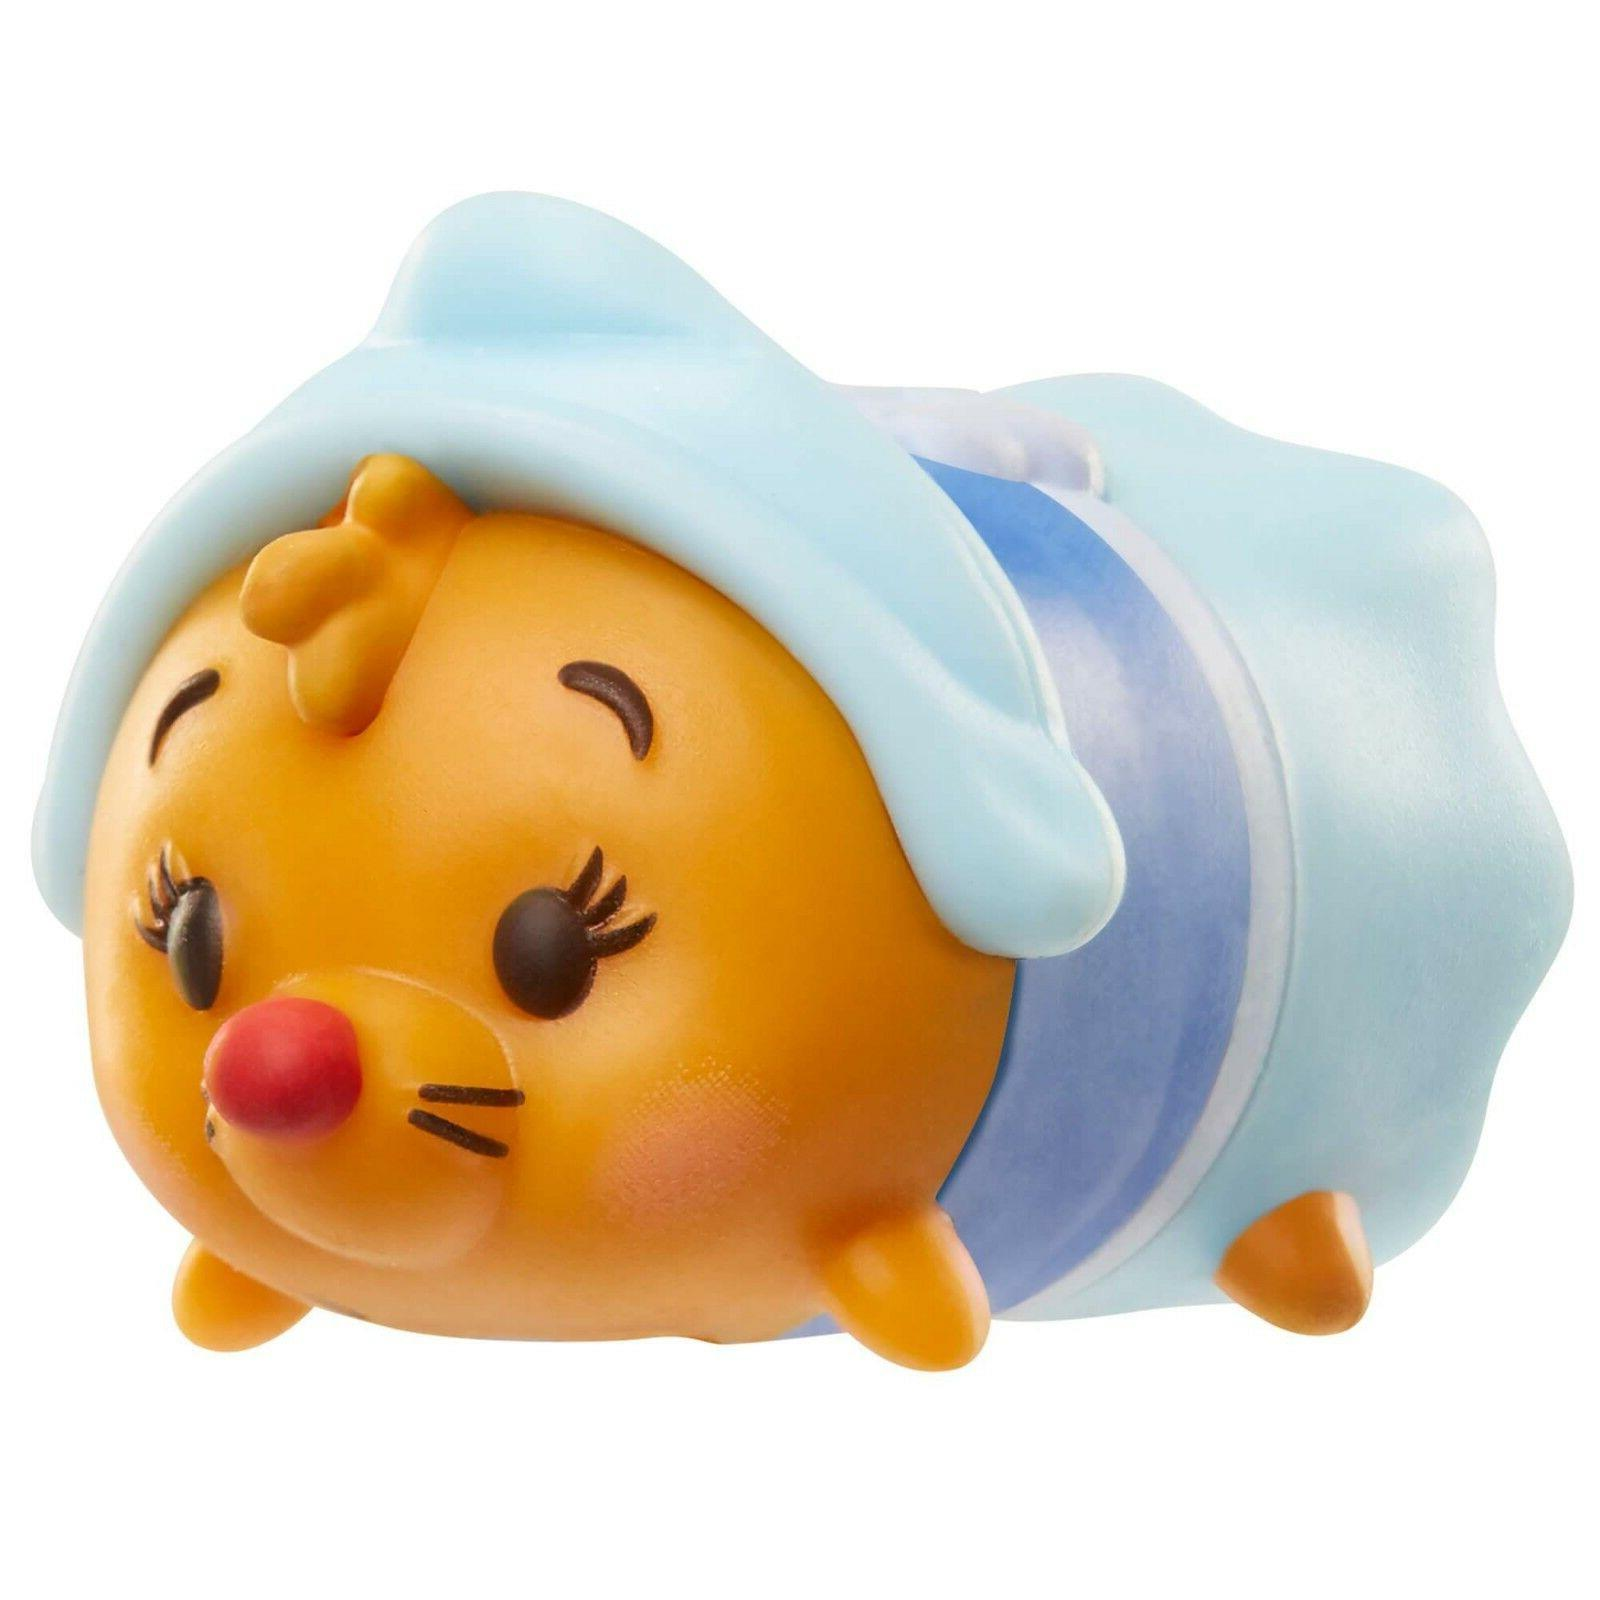 Disney Tsum Tsum 2 Medium - Figure